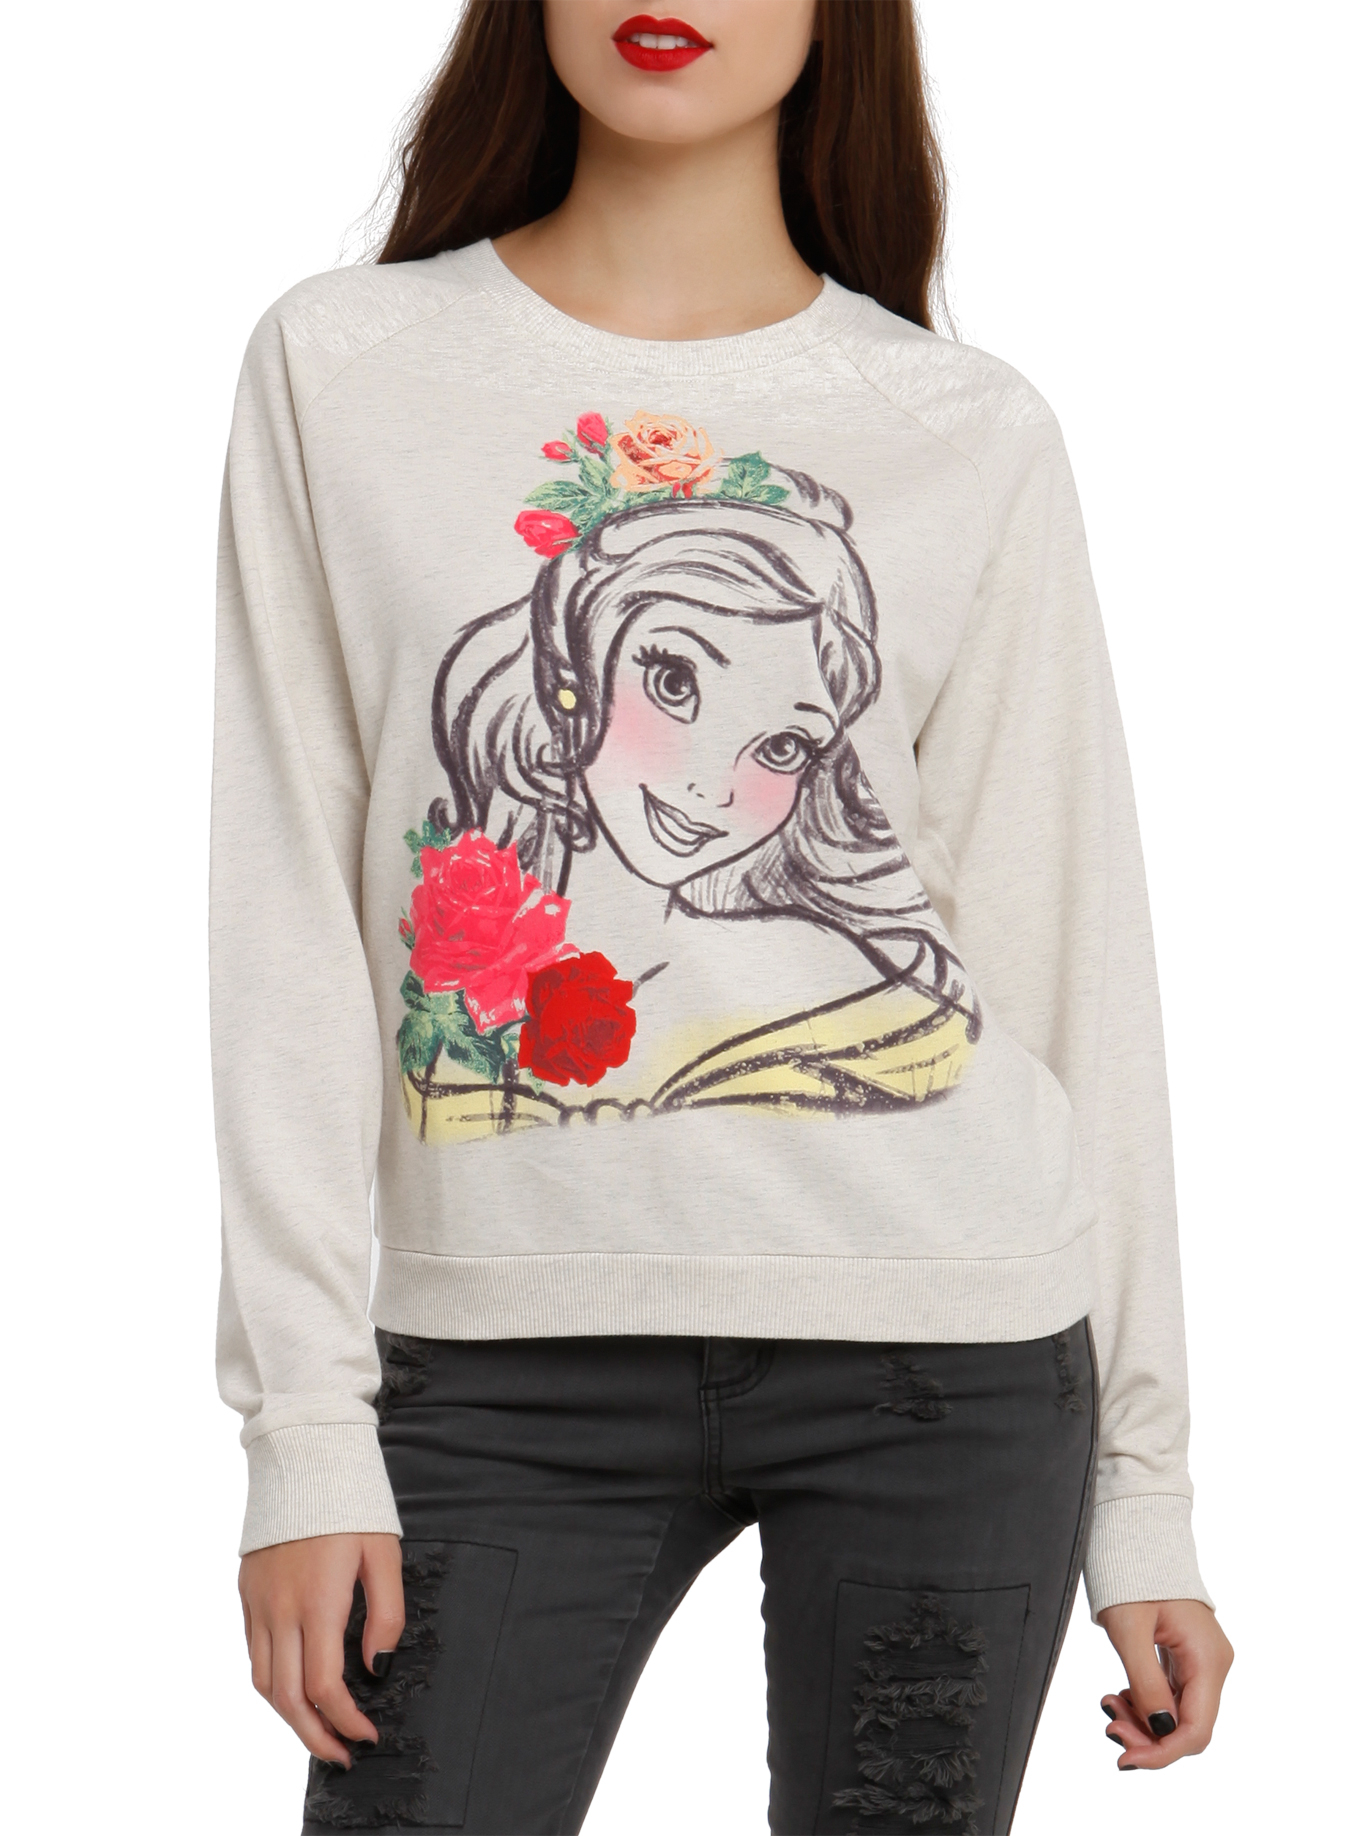 Beauty and the Beast clothing and accessories for women from Hot Topic!